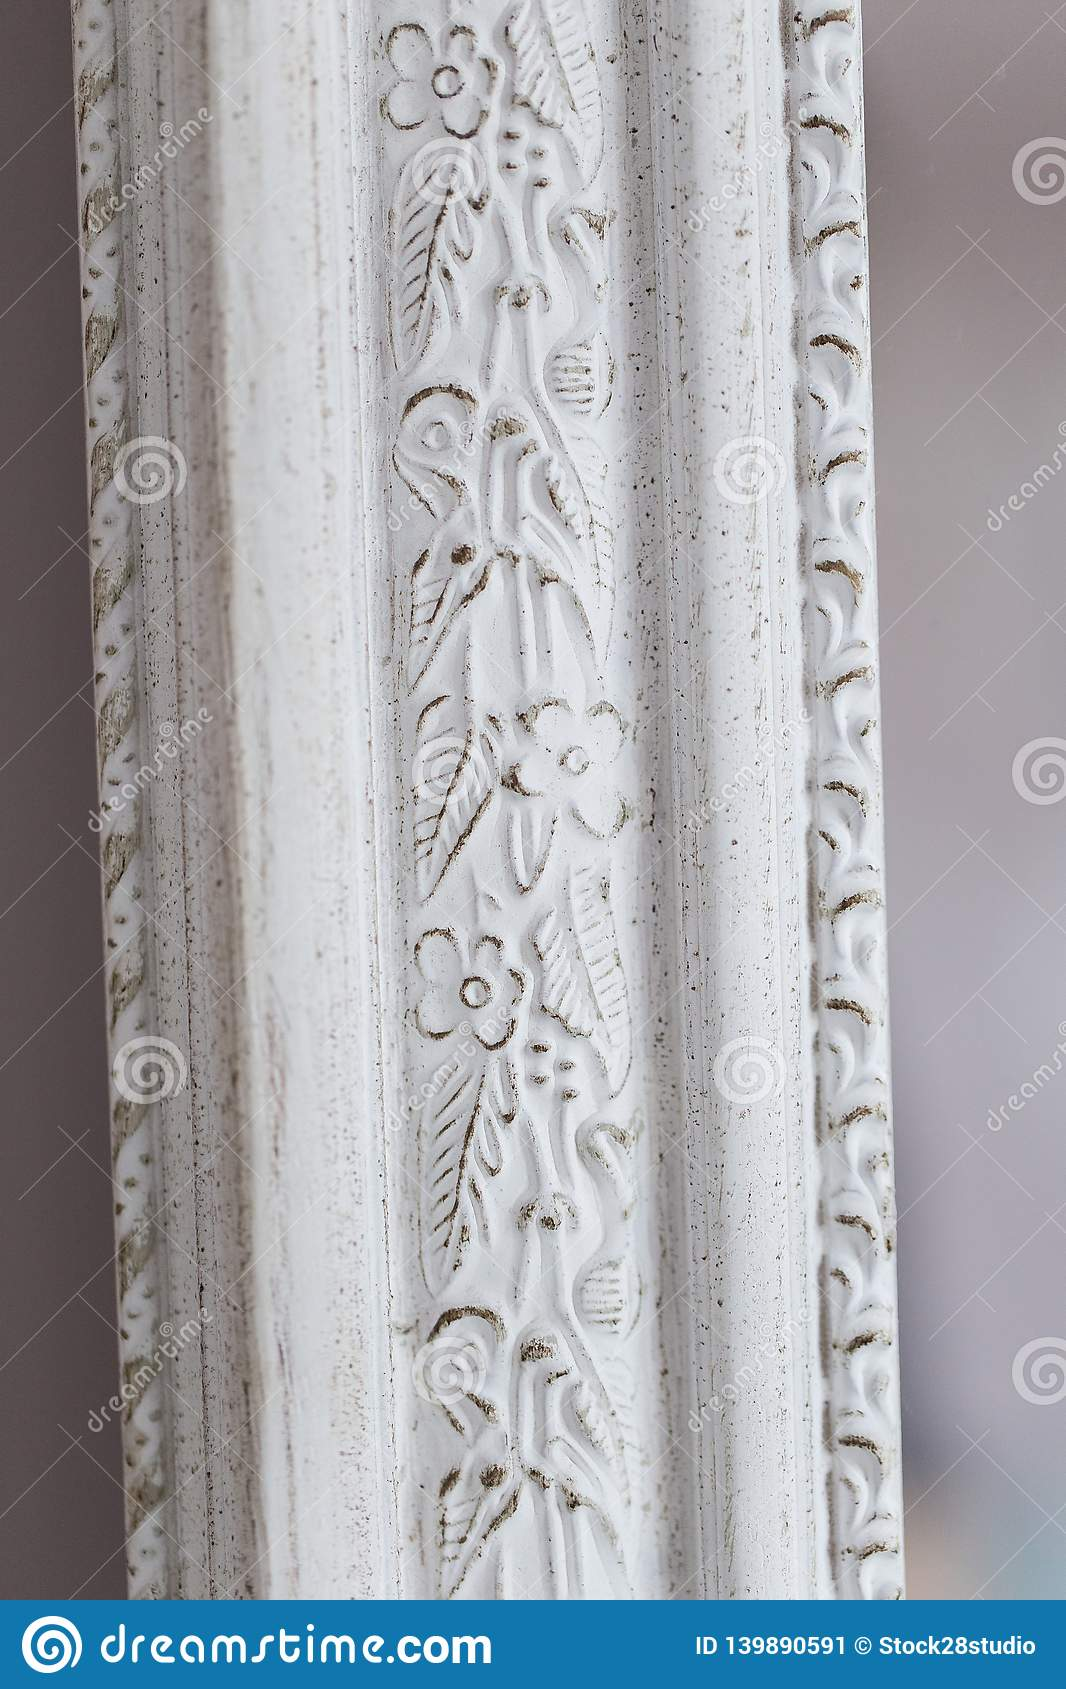 Close-up of a vintage mirror with decorative ornaments